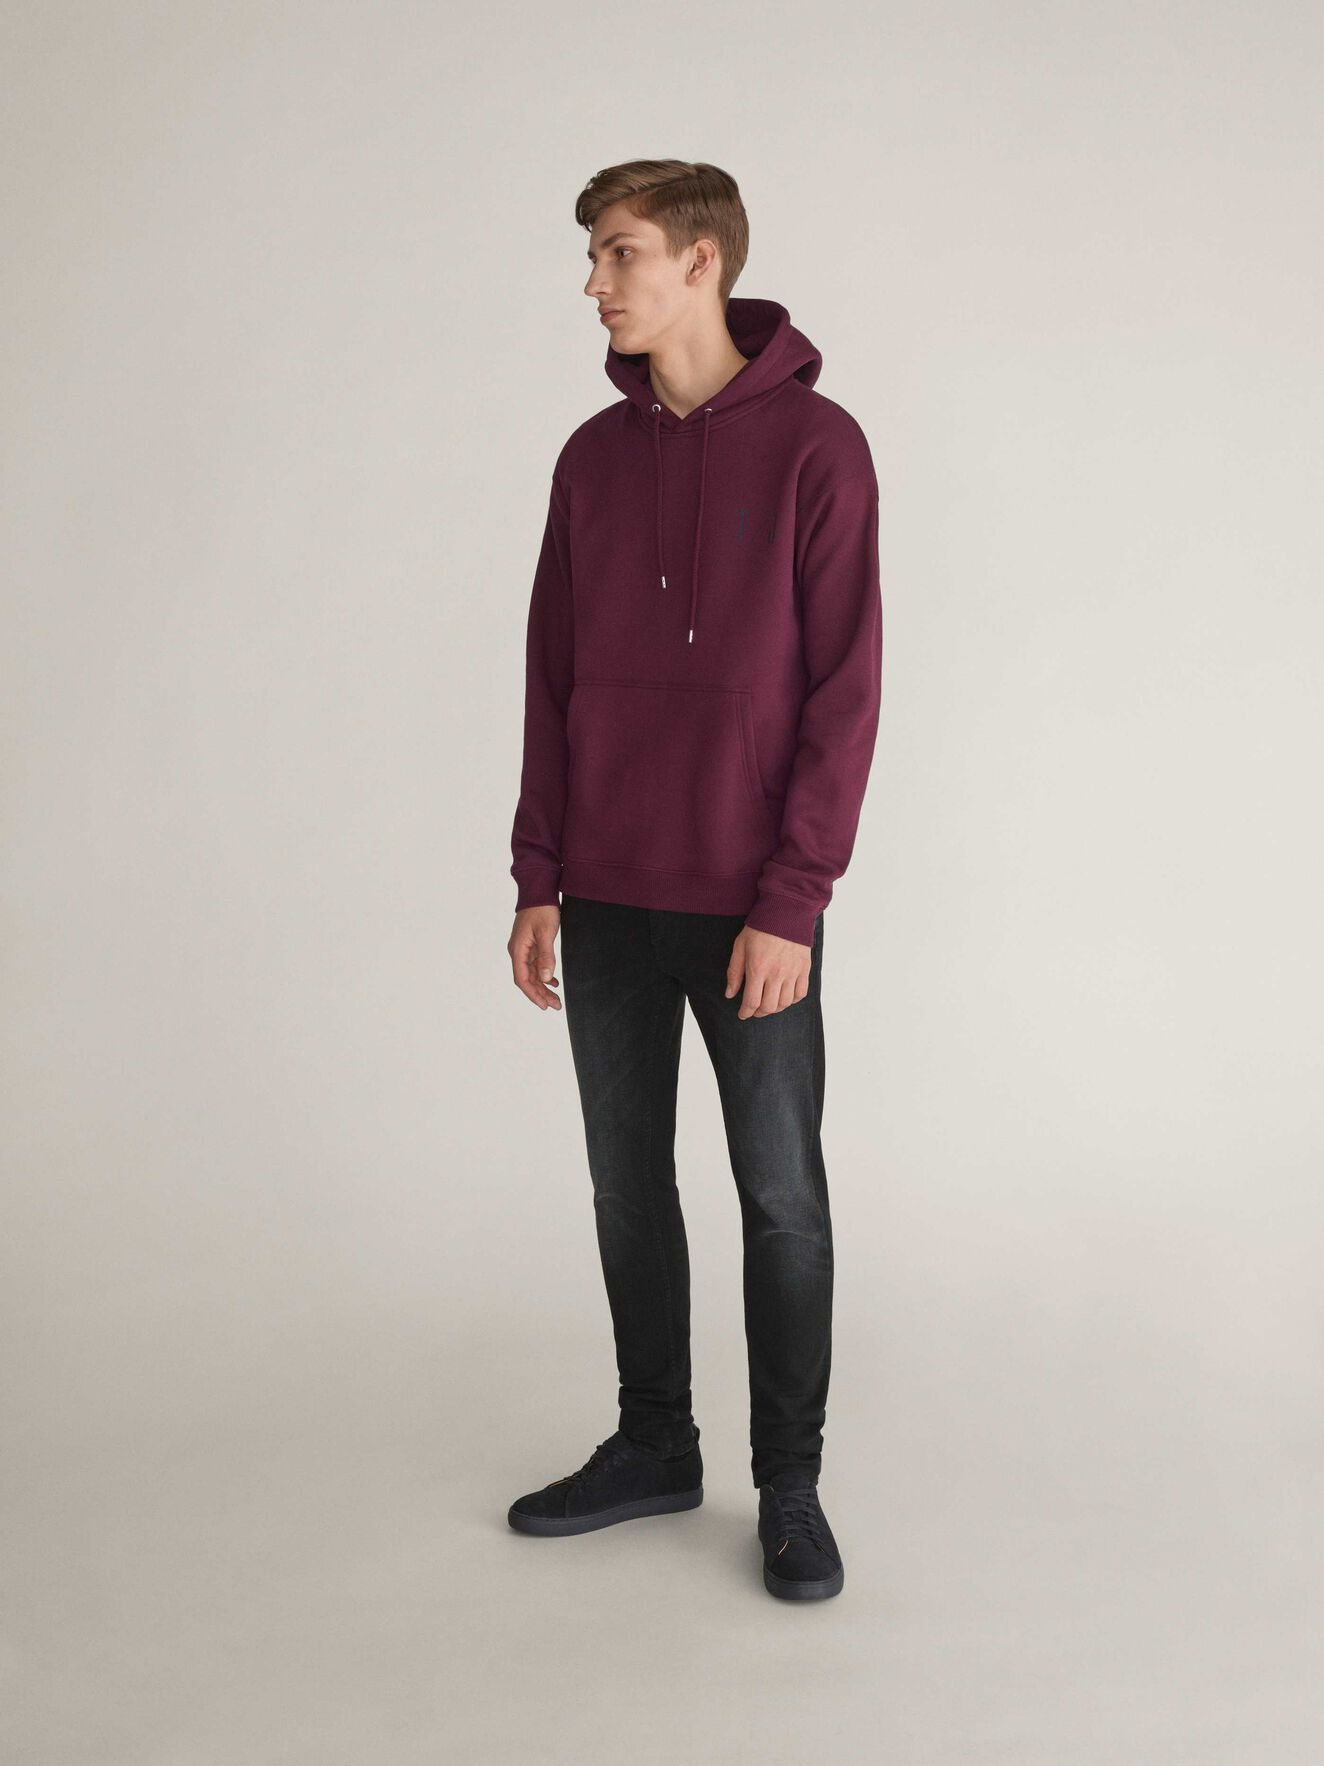 Plies Hoodie in Deep Ruby from Tiger of Sweden